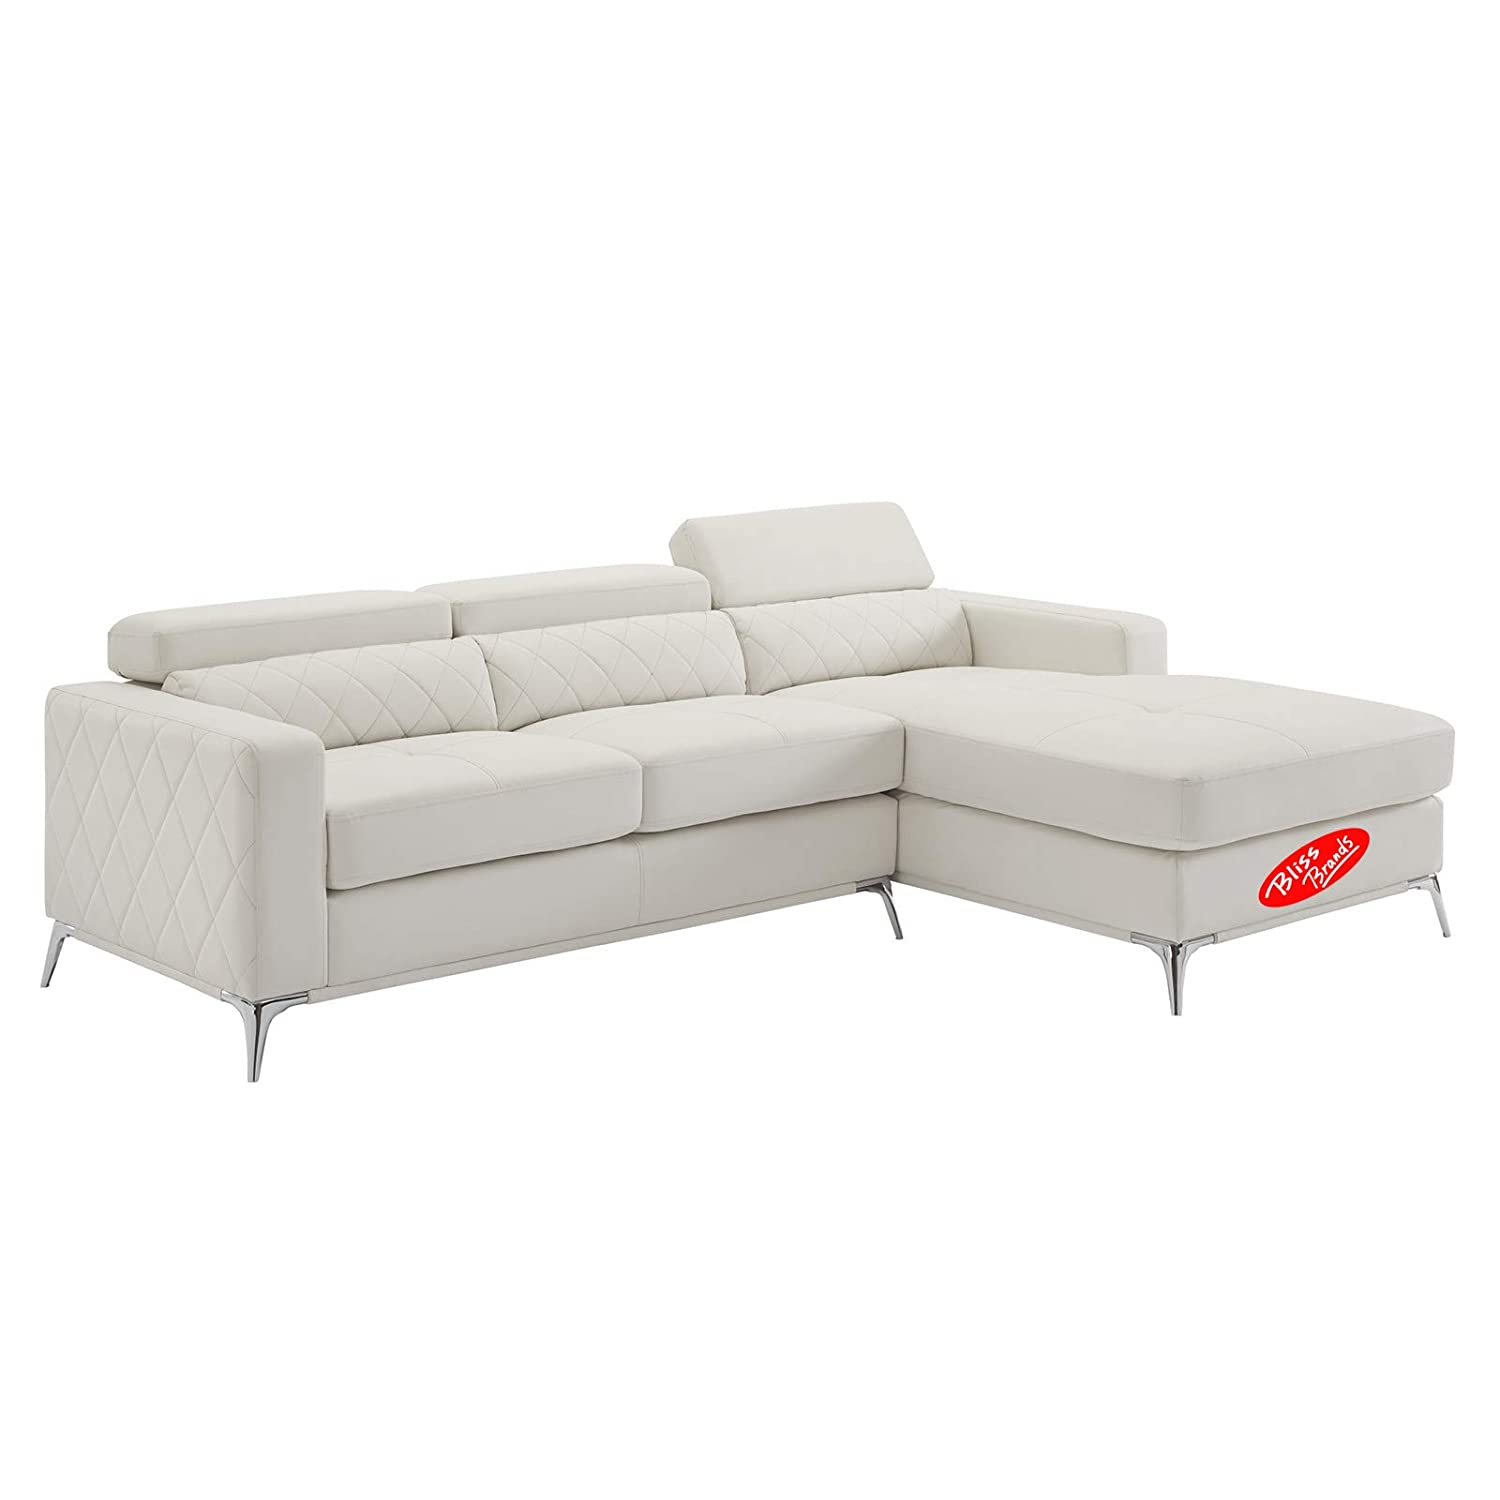 Astonishing Sectional Sofa With Right Facing Chaise 2 Pieces Set Faux Leather Recliner White 2019 Updated Model By Bliss Brands Gmtry Best Dining Table And Chair Ideas Images Gmtryco